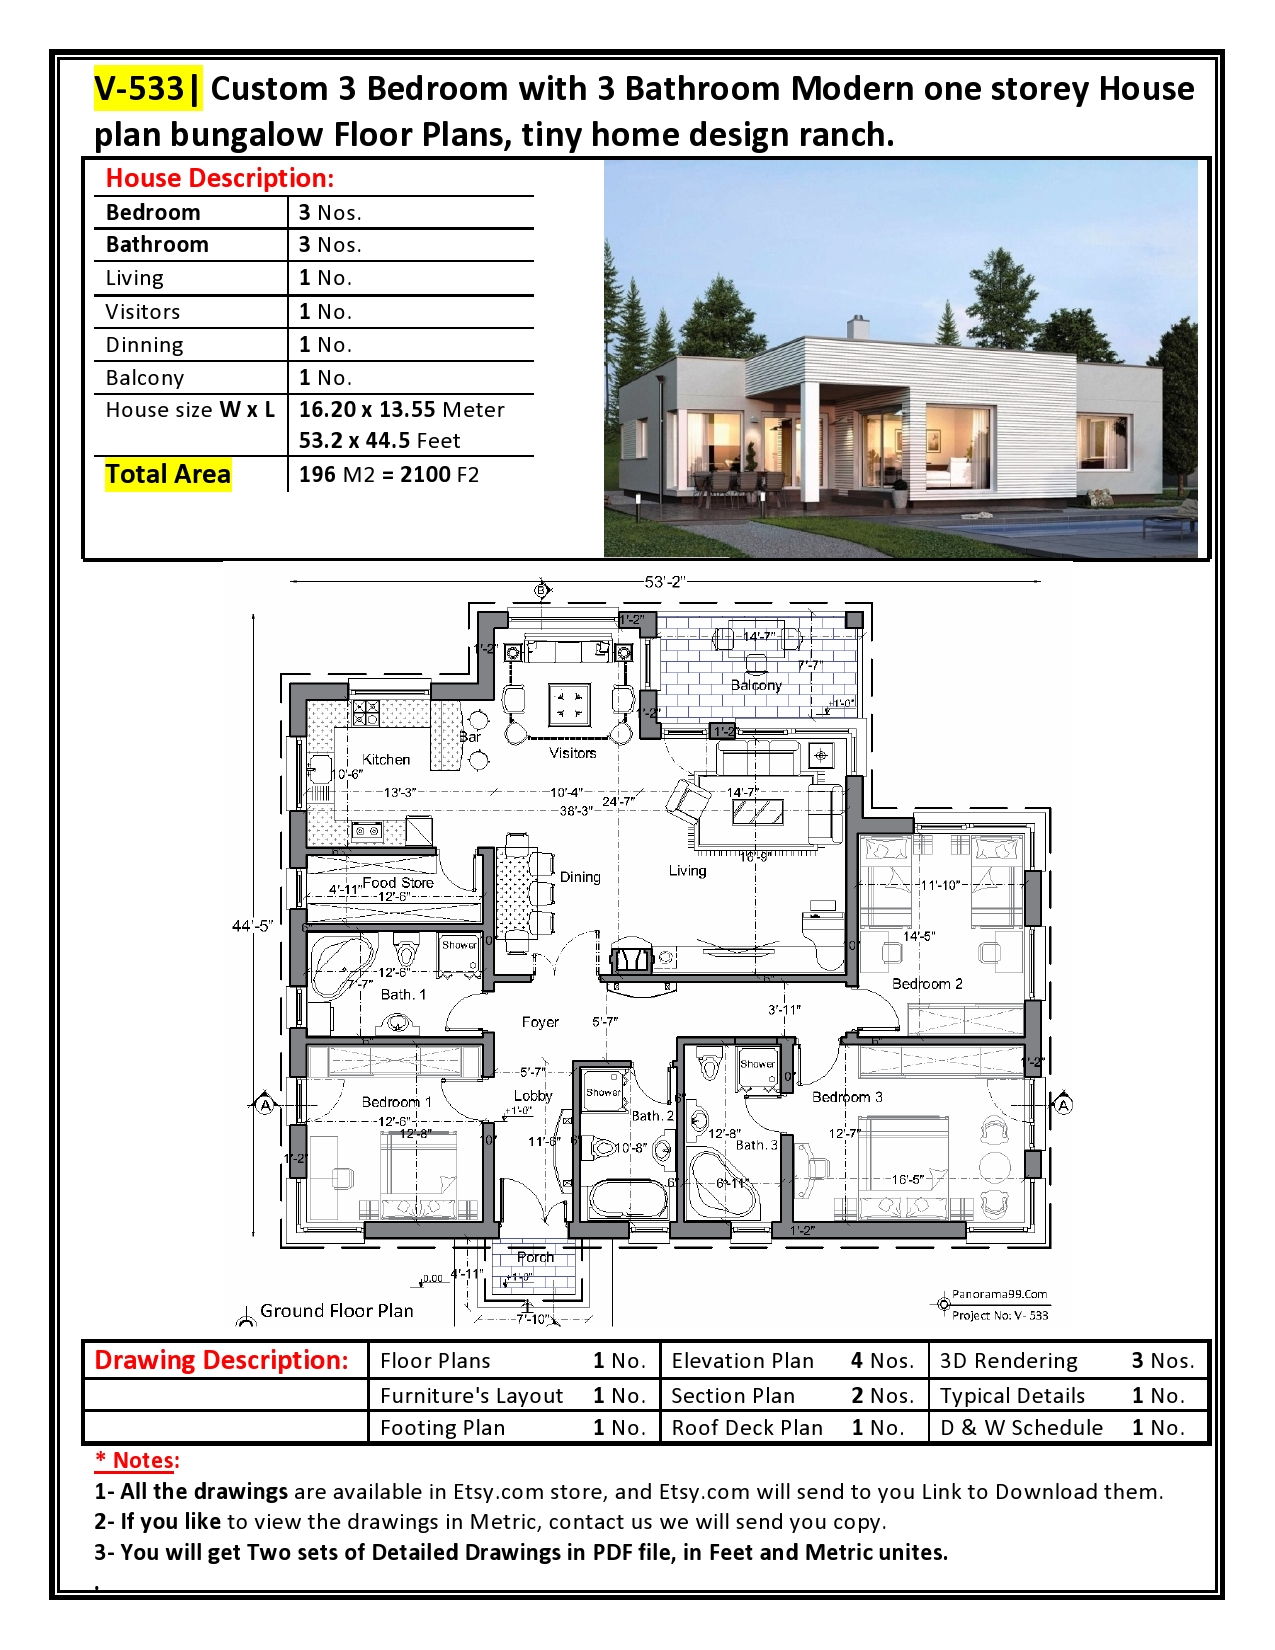 V 387 Modern House Plans Ebook In Pdf File Bungalow Duplex Triplex With 2 6 Bedroom